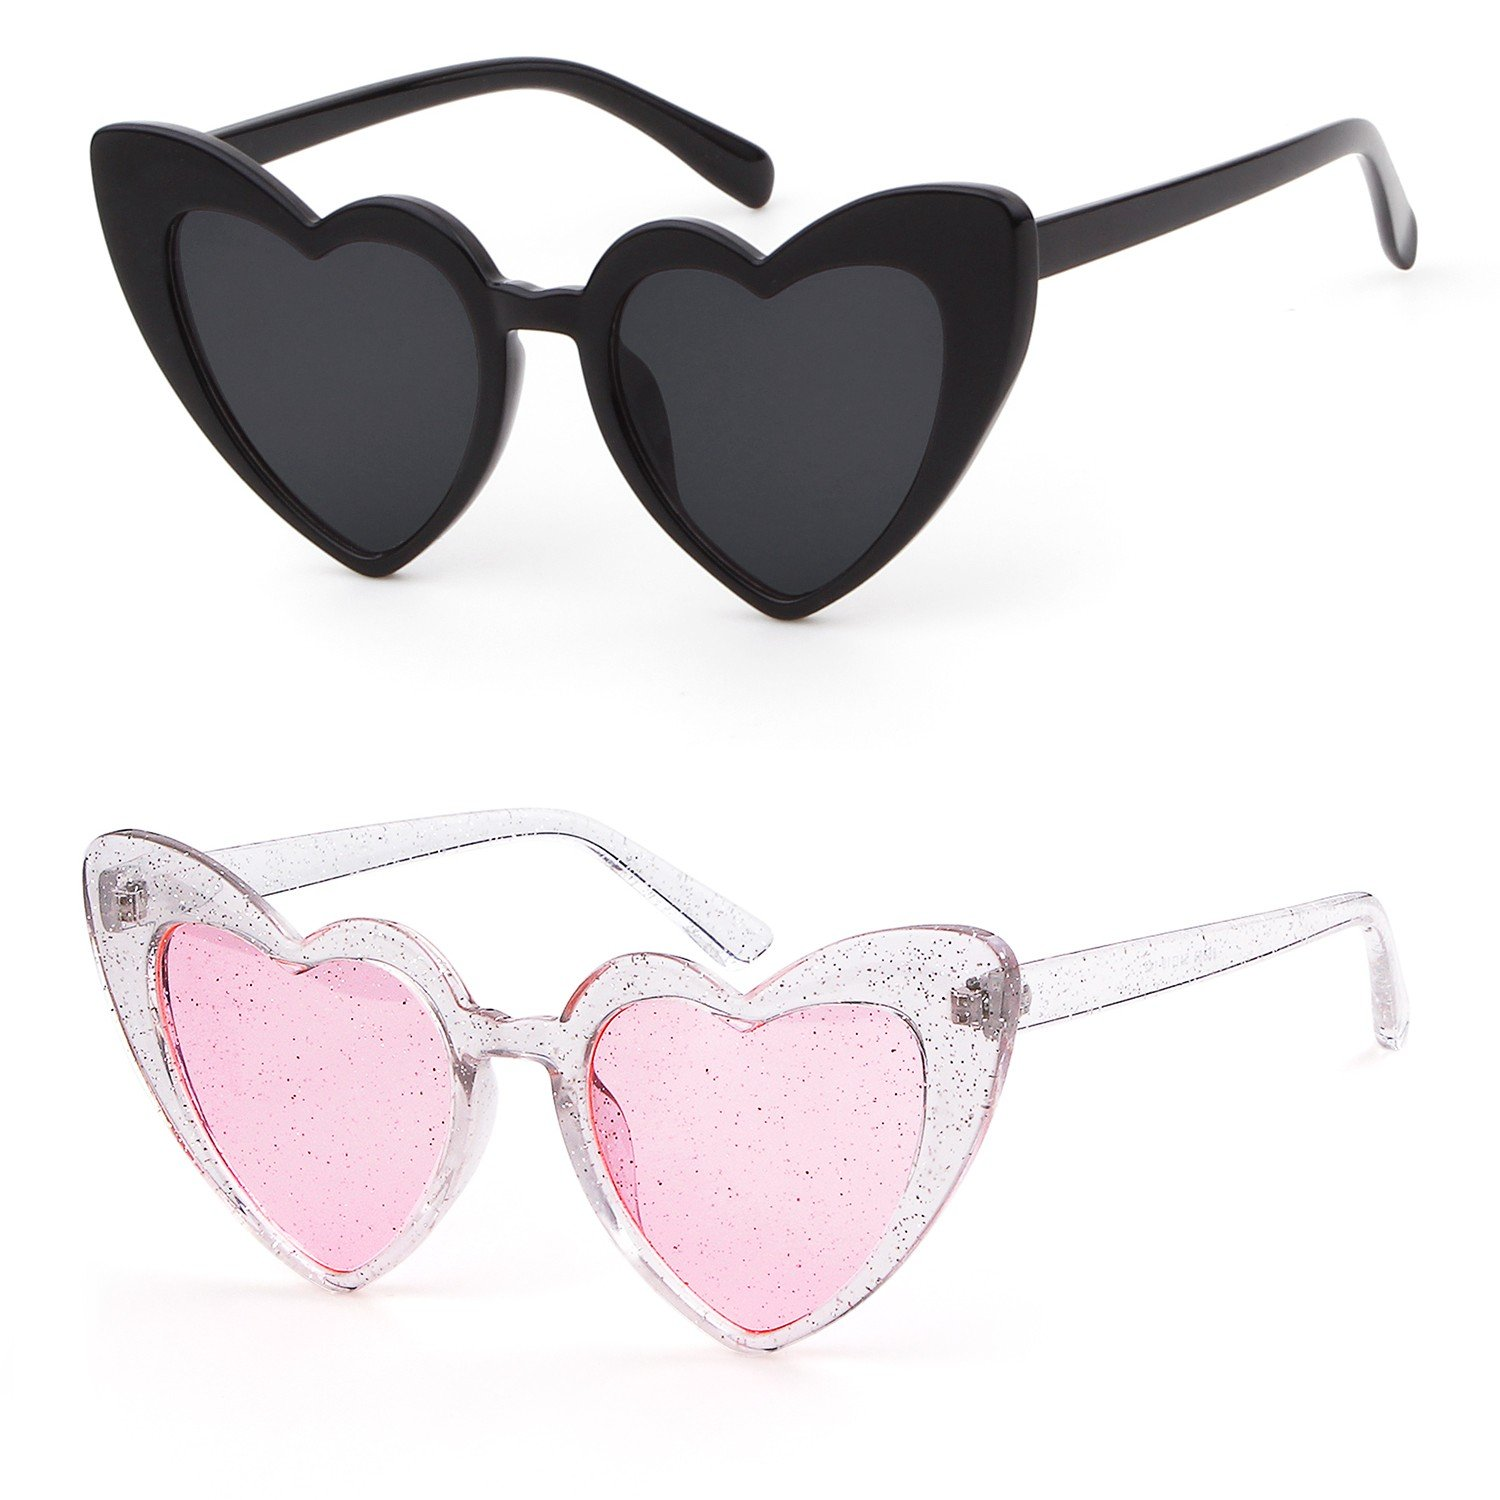 fcff18a81087c Lens height  56 millimeters. Bridge  21 millimeters. Arm  140 millimeters.  FASHION DESIGN  Retro Heart Cateye Frame Sunglasses